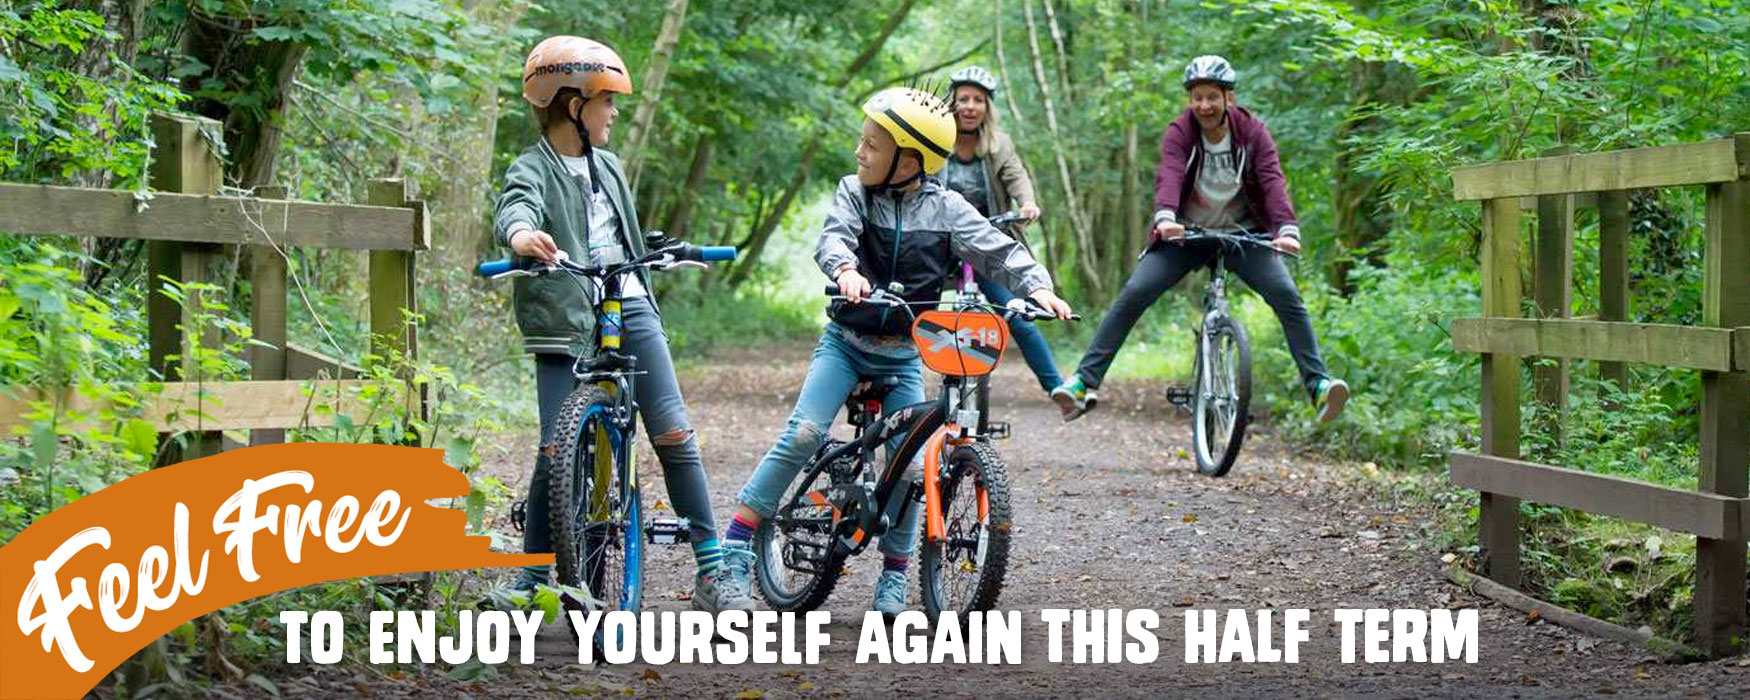 Family cycling in the Churnet Valley, Staffordshire